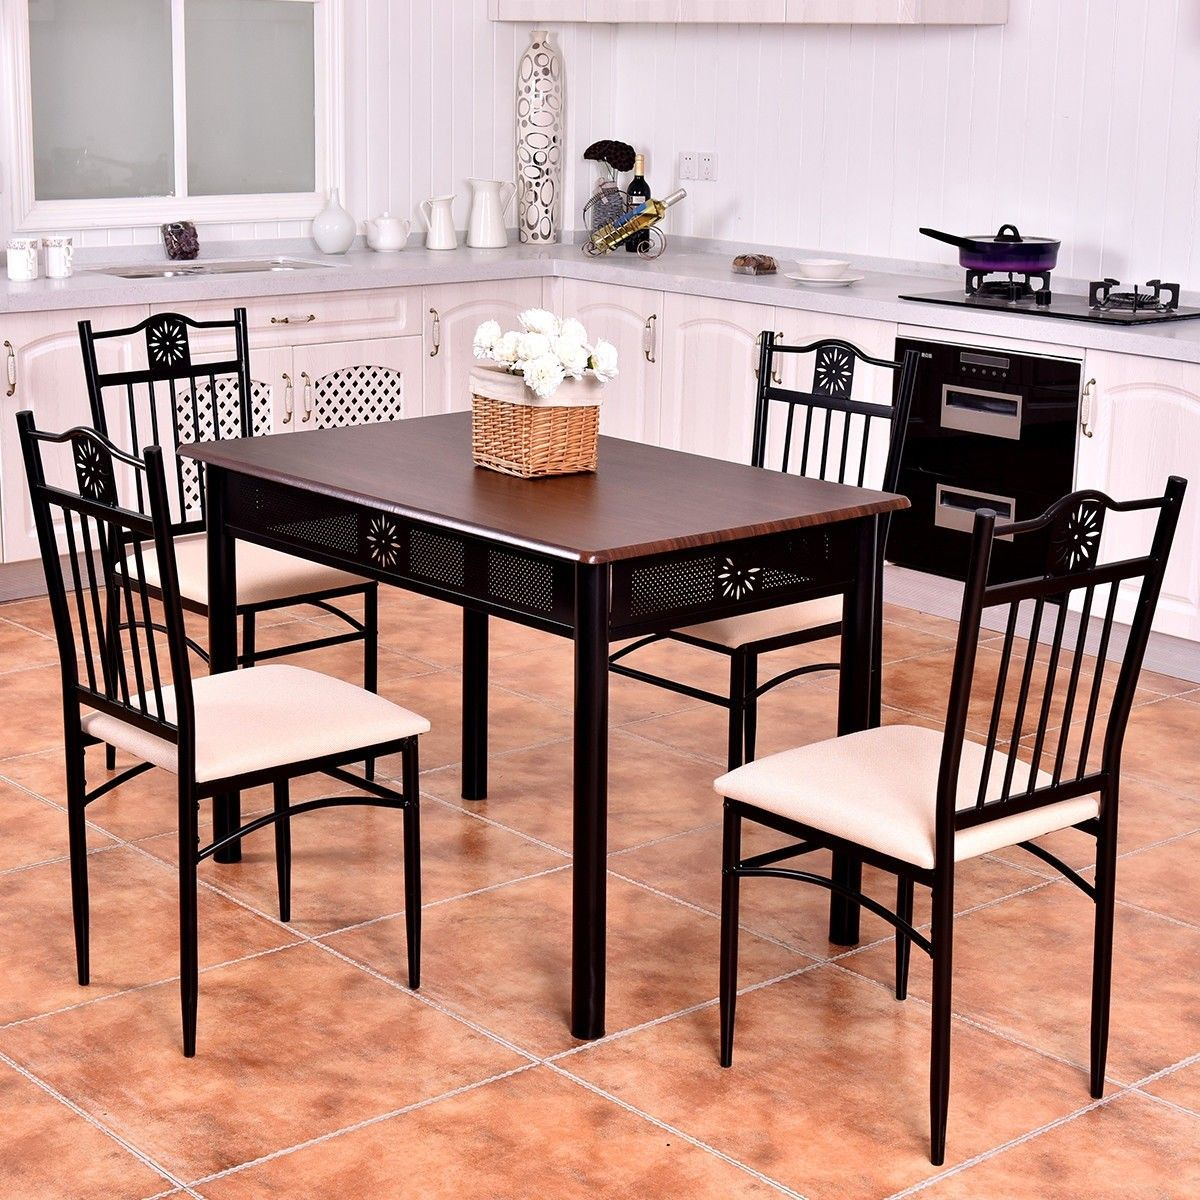 Dining table sets black marble dining table 4 chairs ...